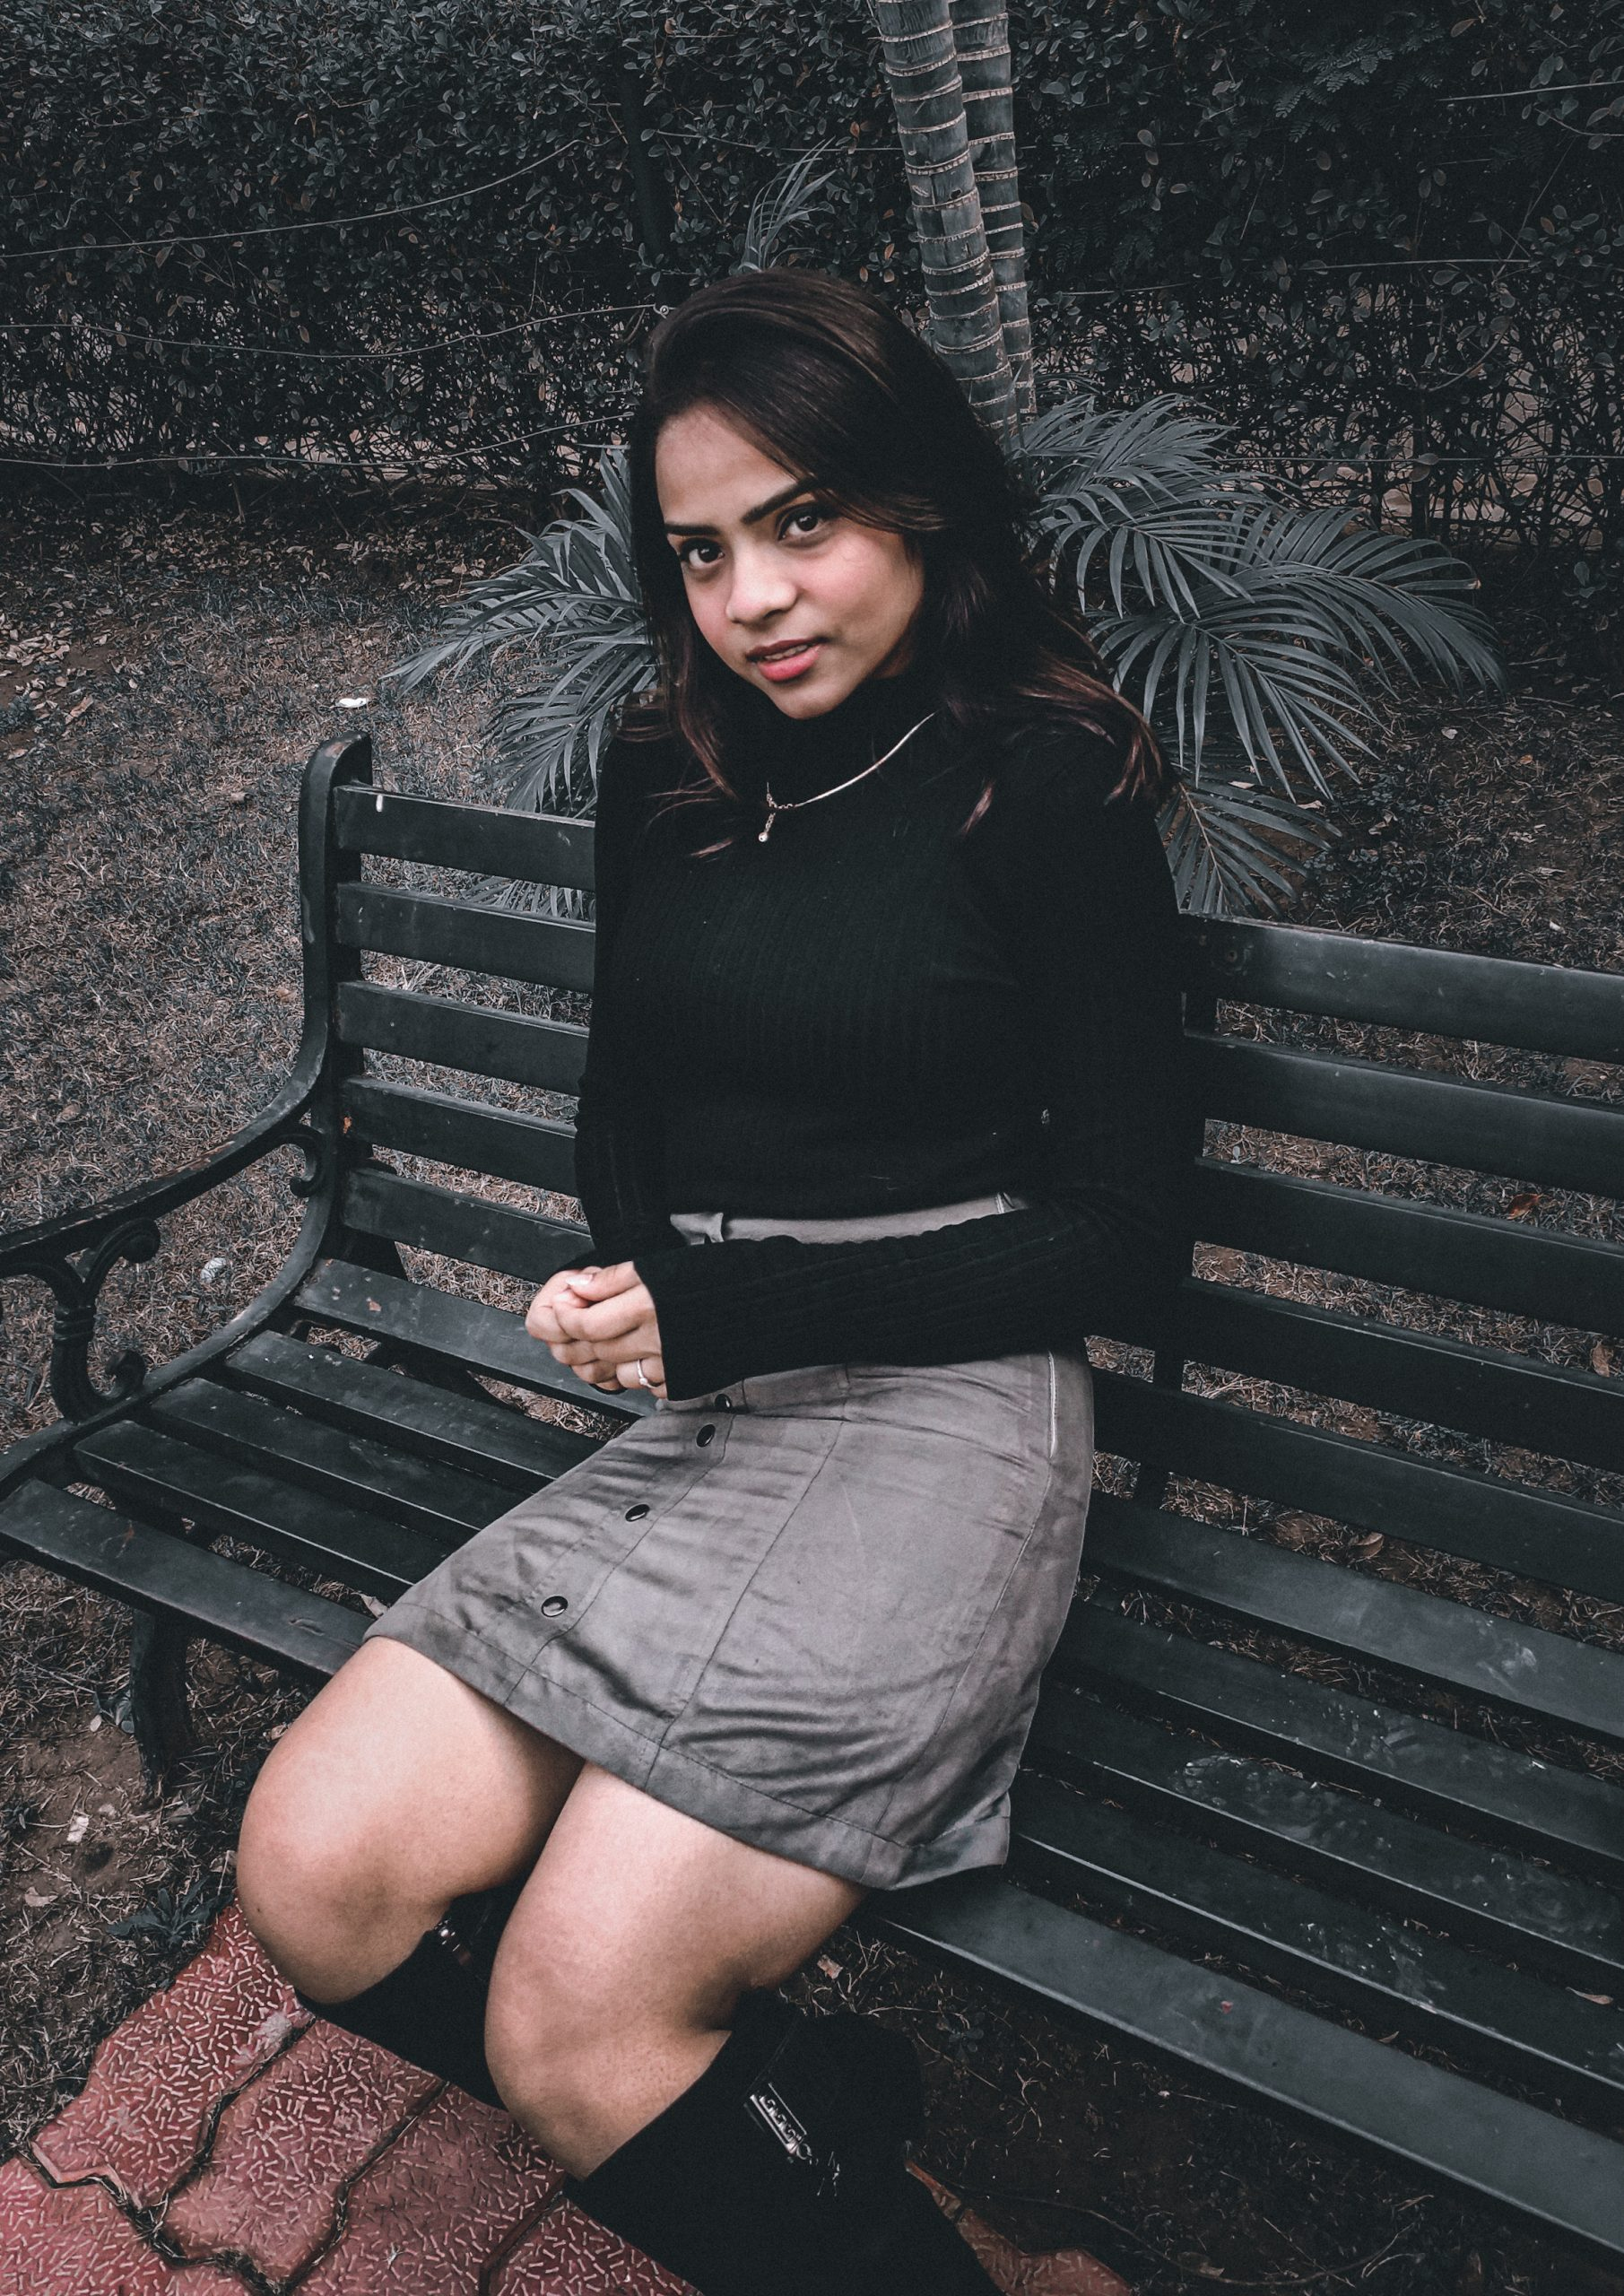 A girl on a bench